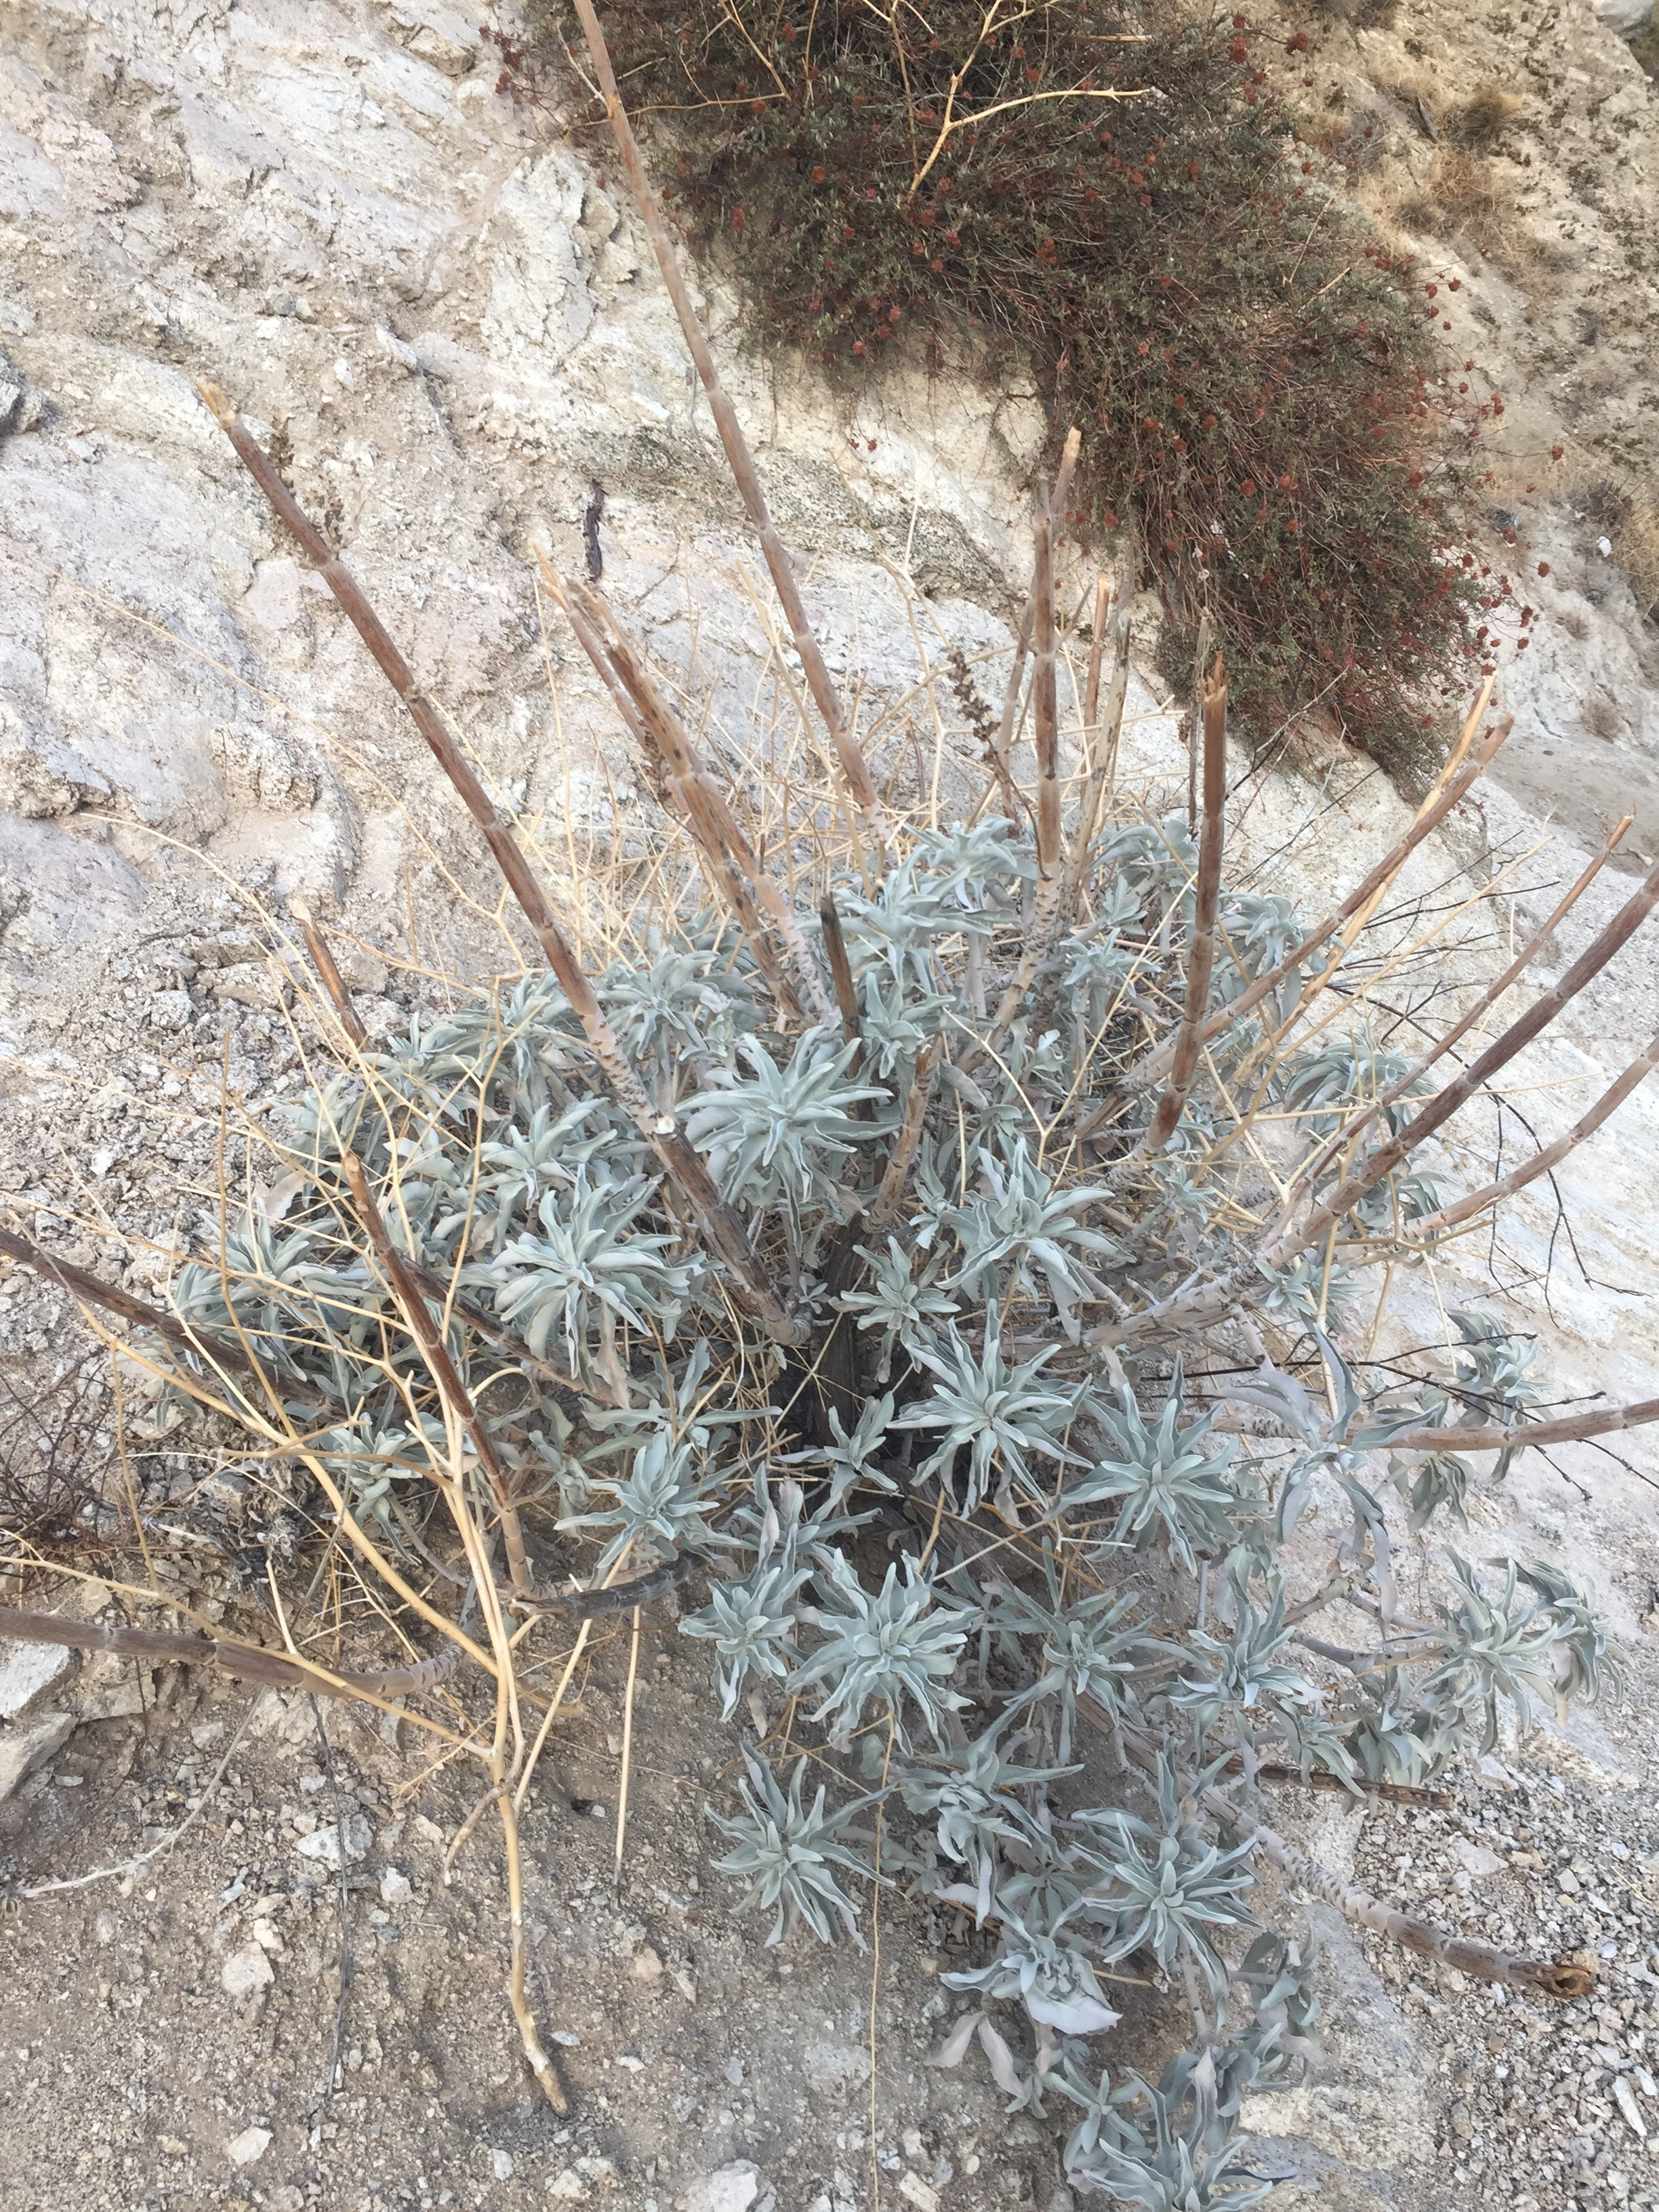 A new plant that is prolific on the dry slopes around 2000', whose silvery grey foliage is striking in early morning light